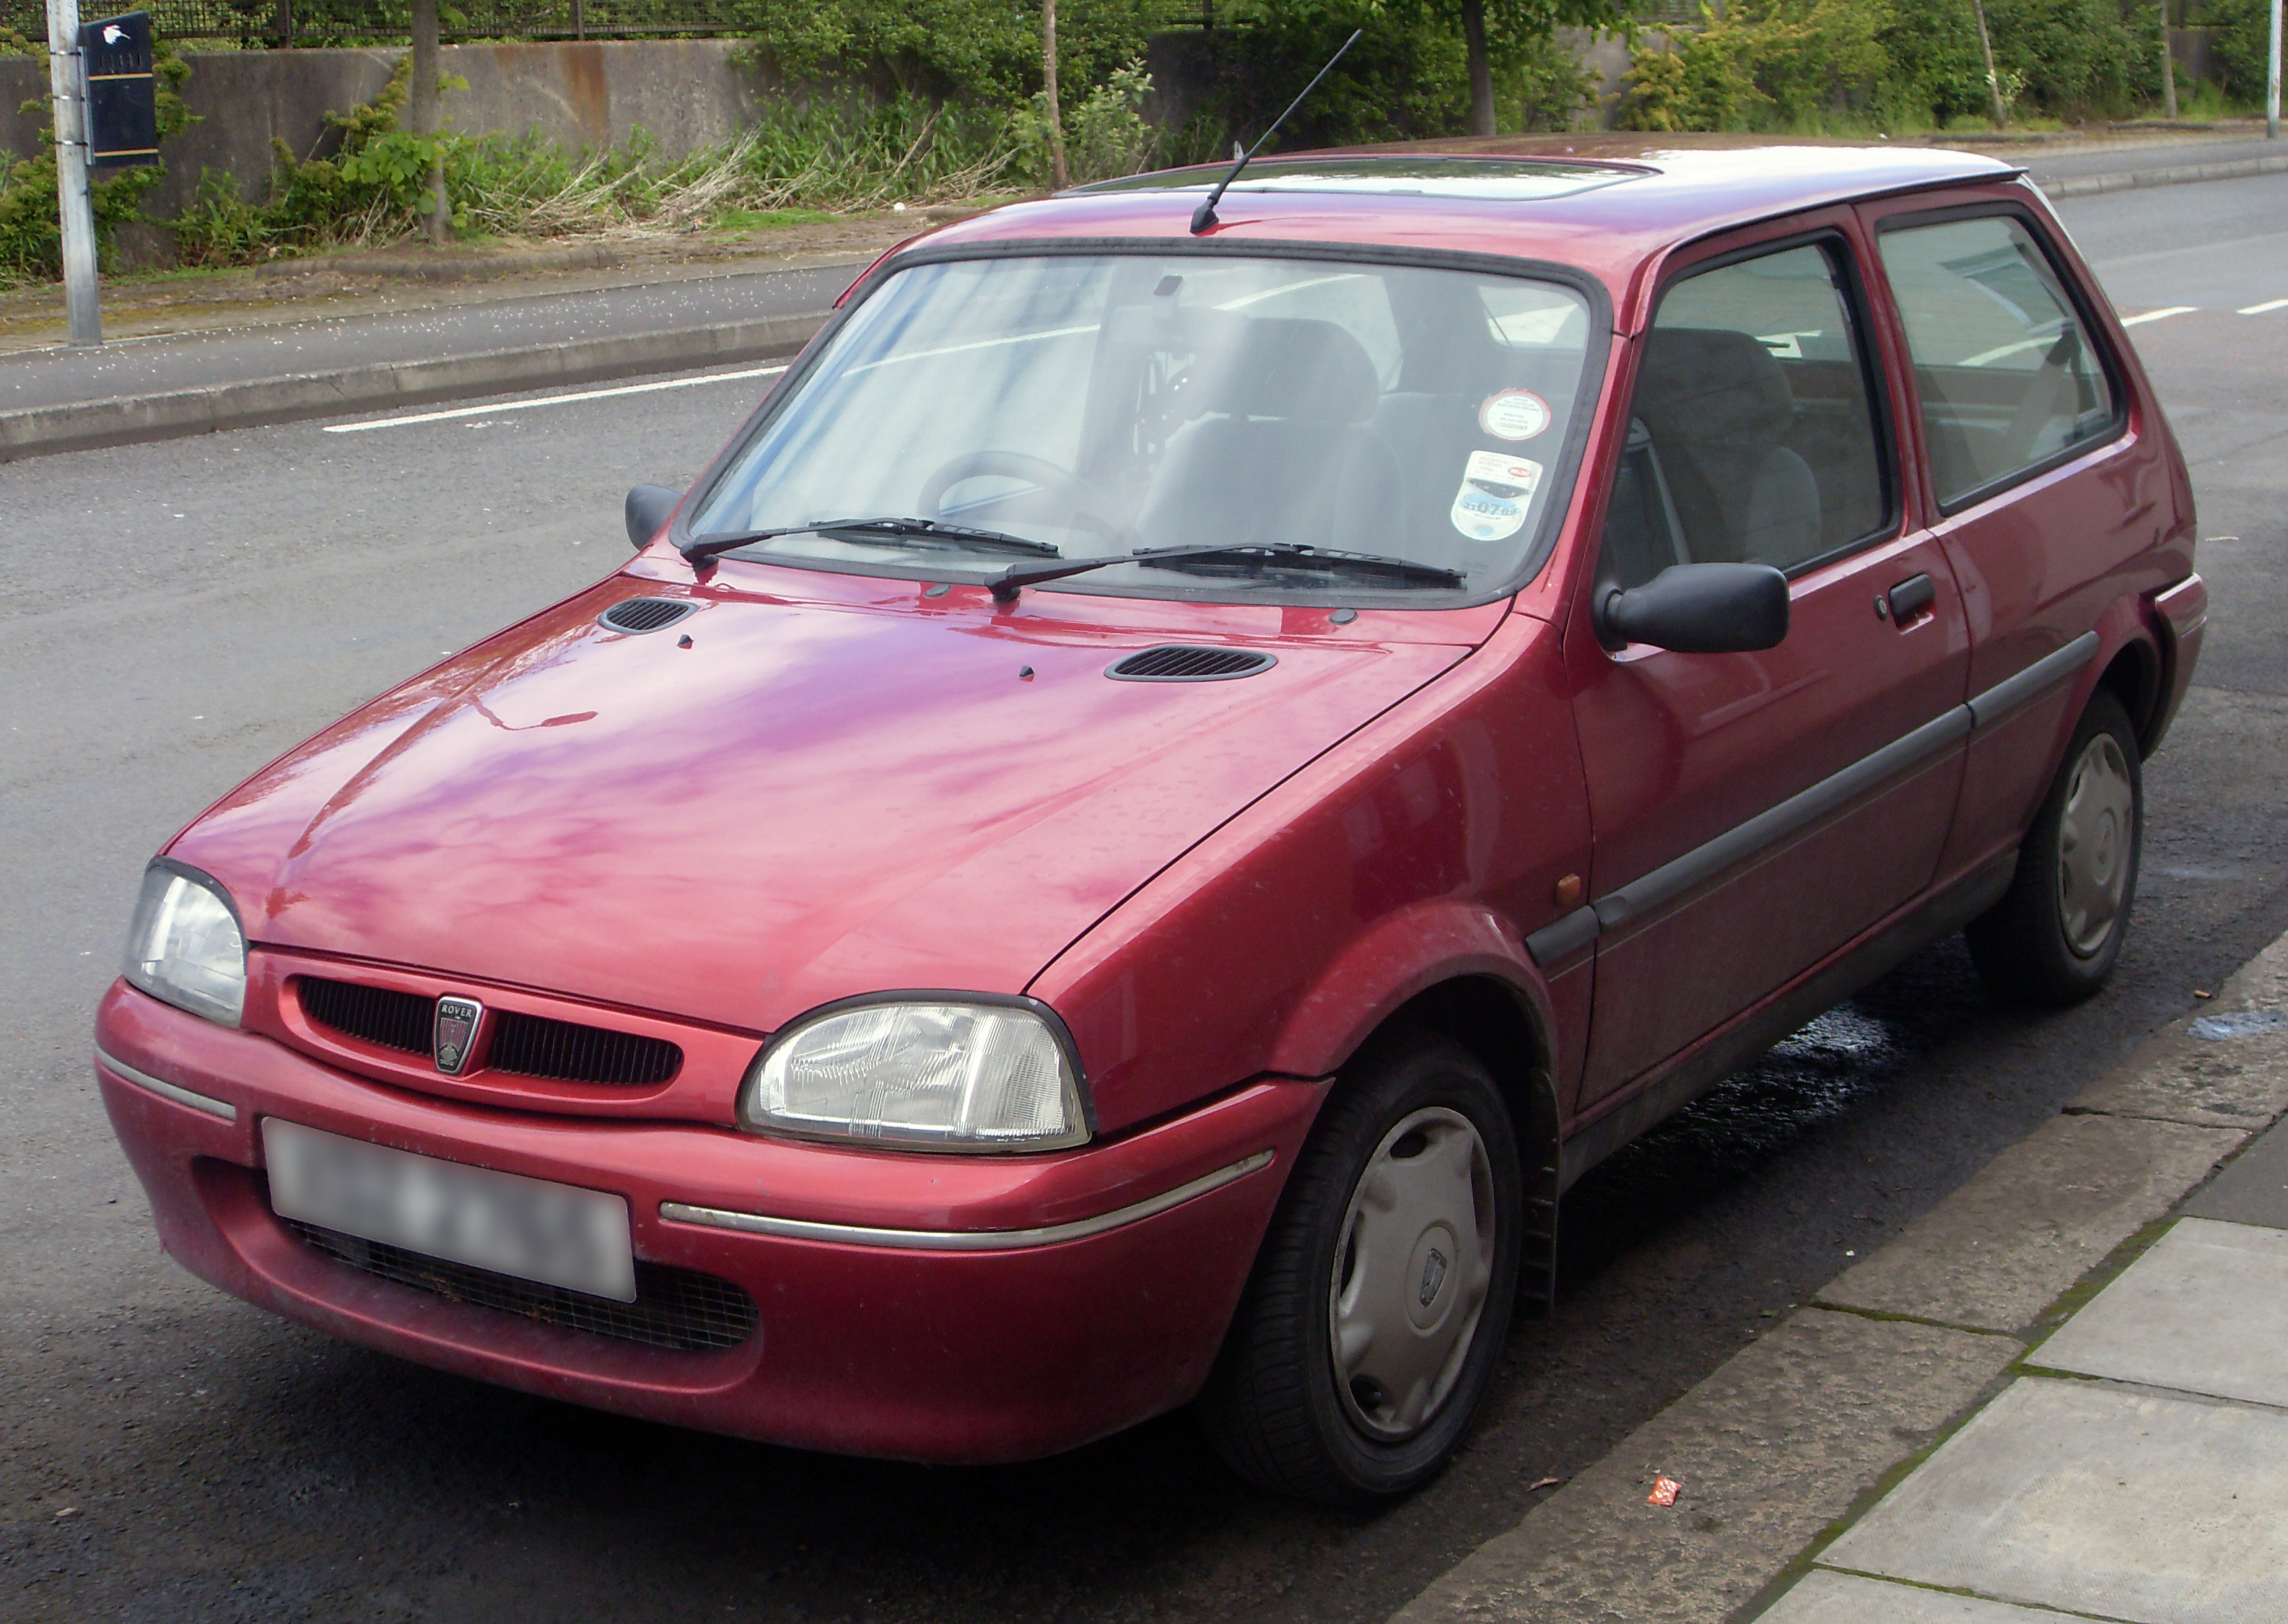 Rover 100 image #4